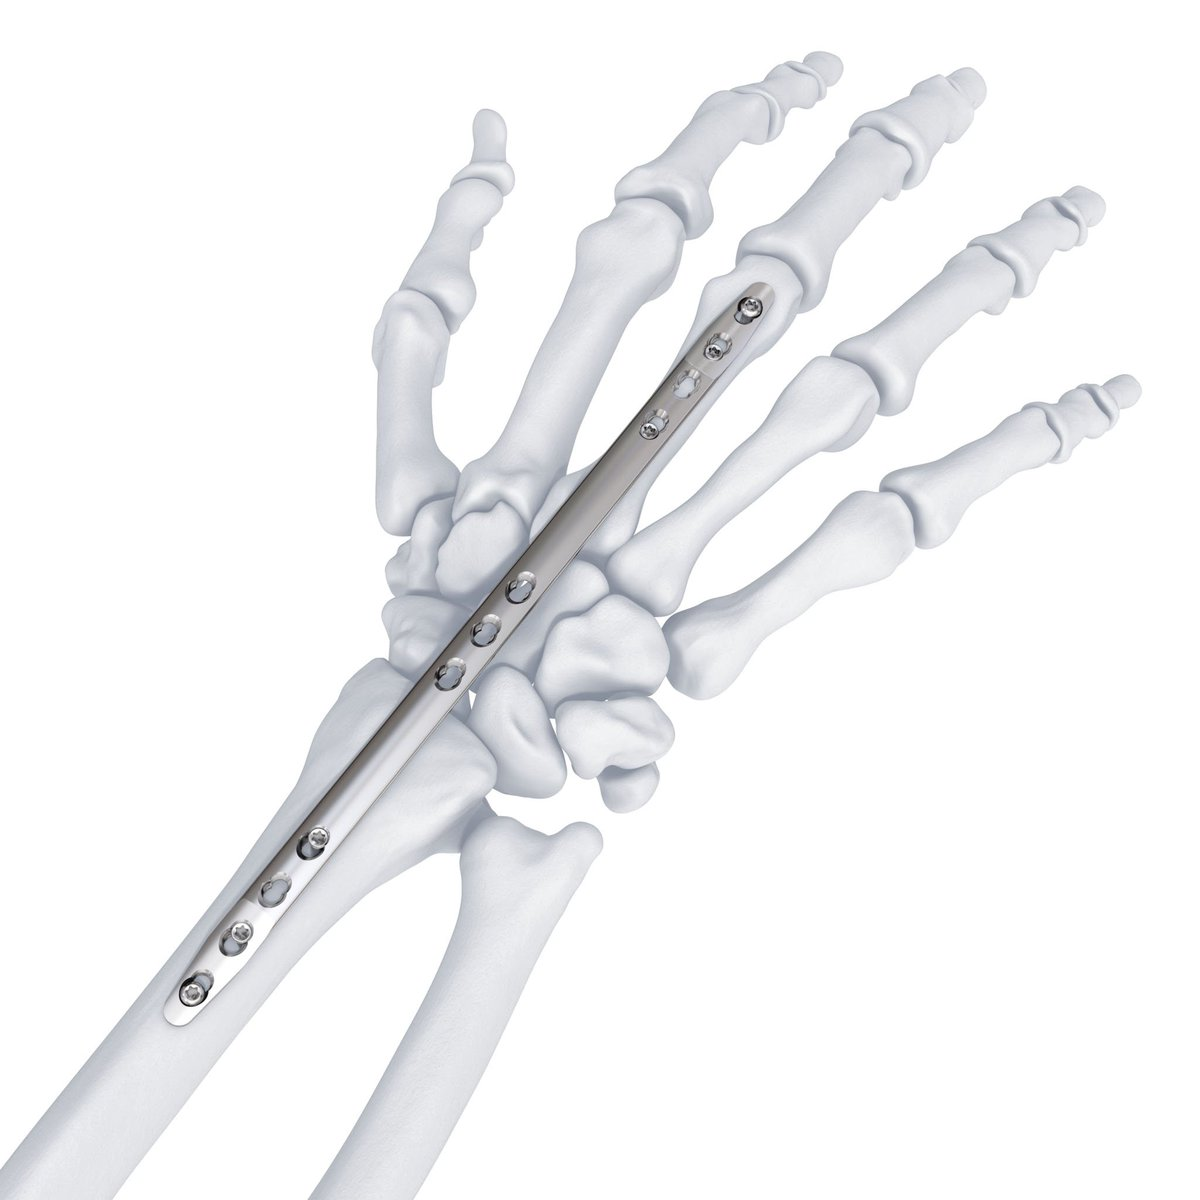 synthes bioresorbable Synthes, inc, together with its subsidiaries, develops, manufactures, and distributes instruments, implants, and biomaterials for the surgical fixation, correction, and regeneration of the human and animal skeleton and its soft tissues.